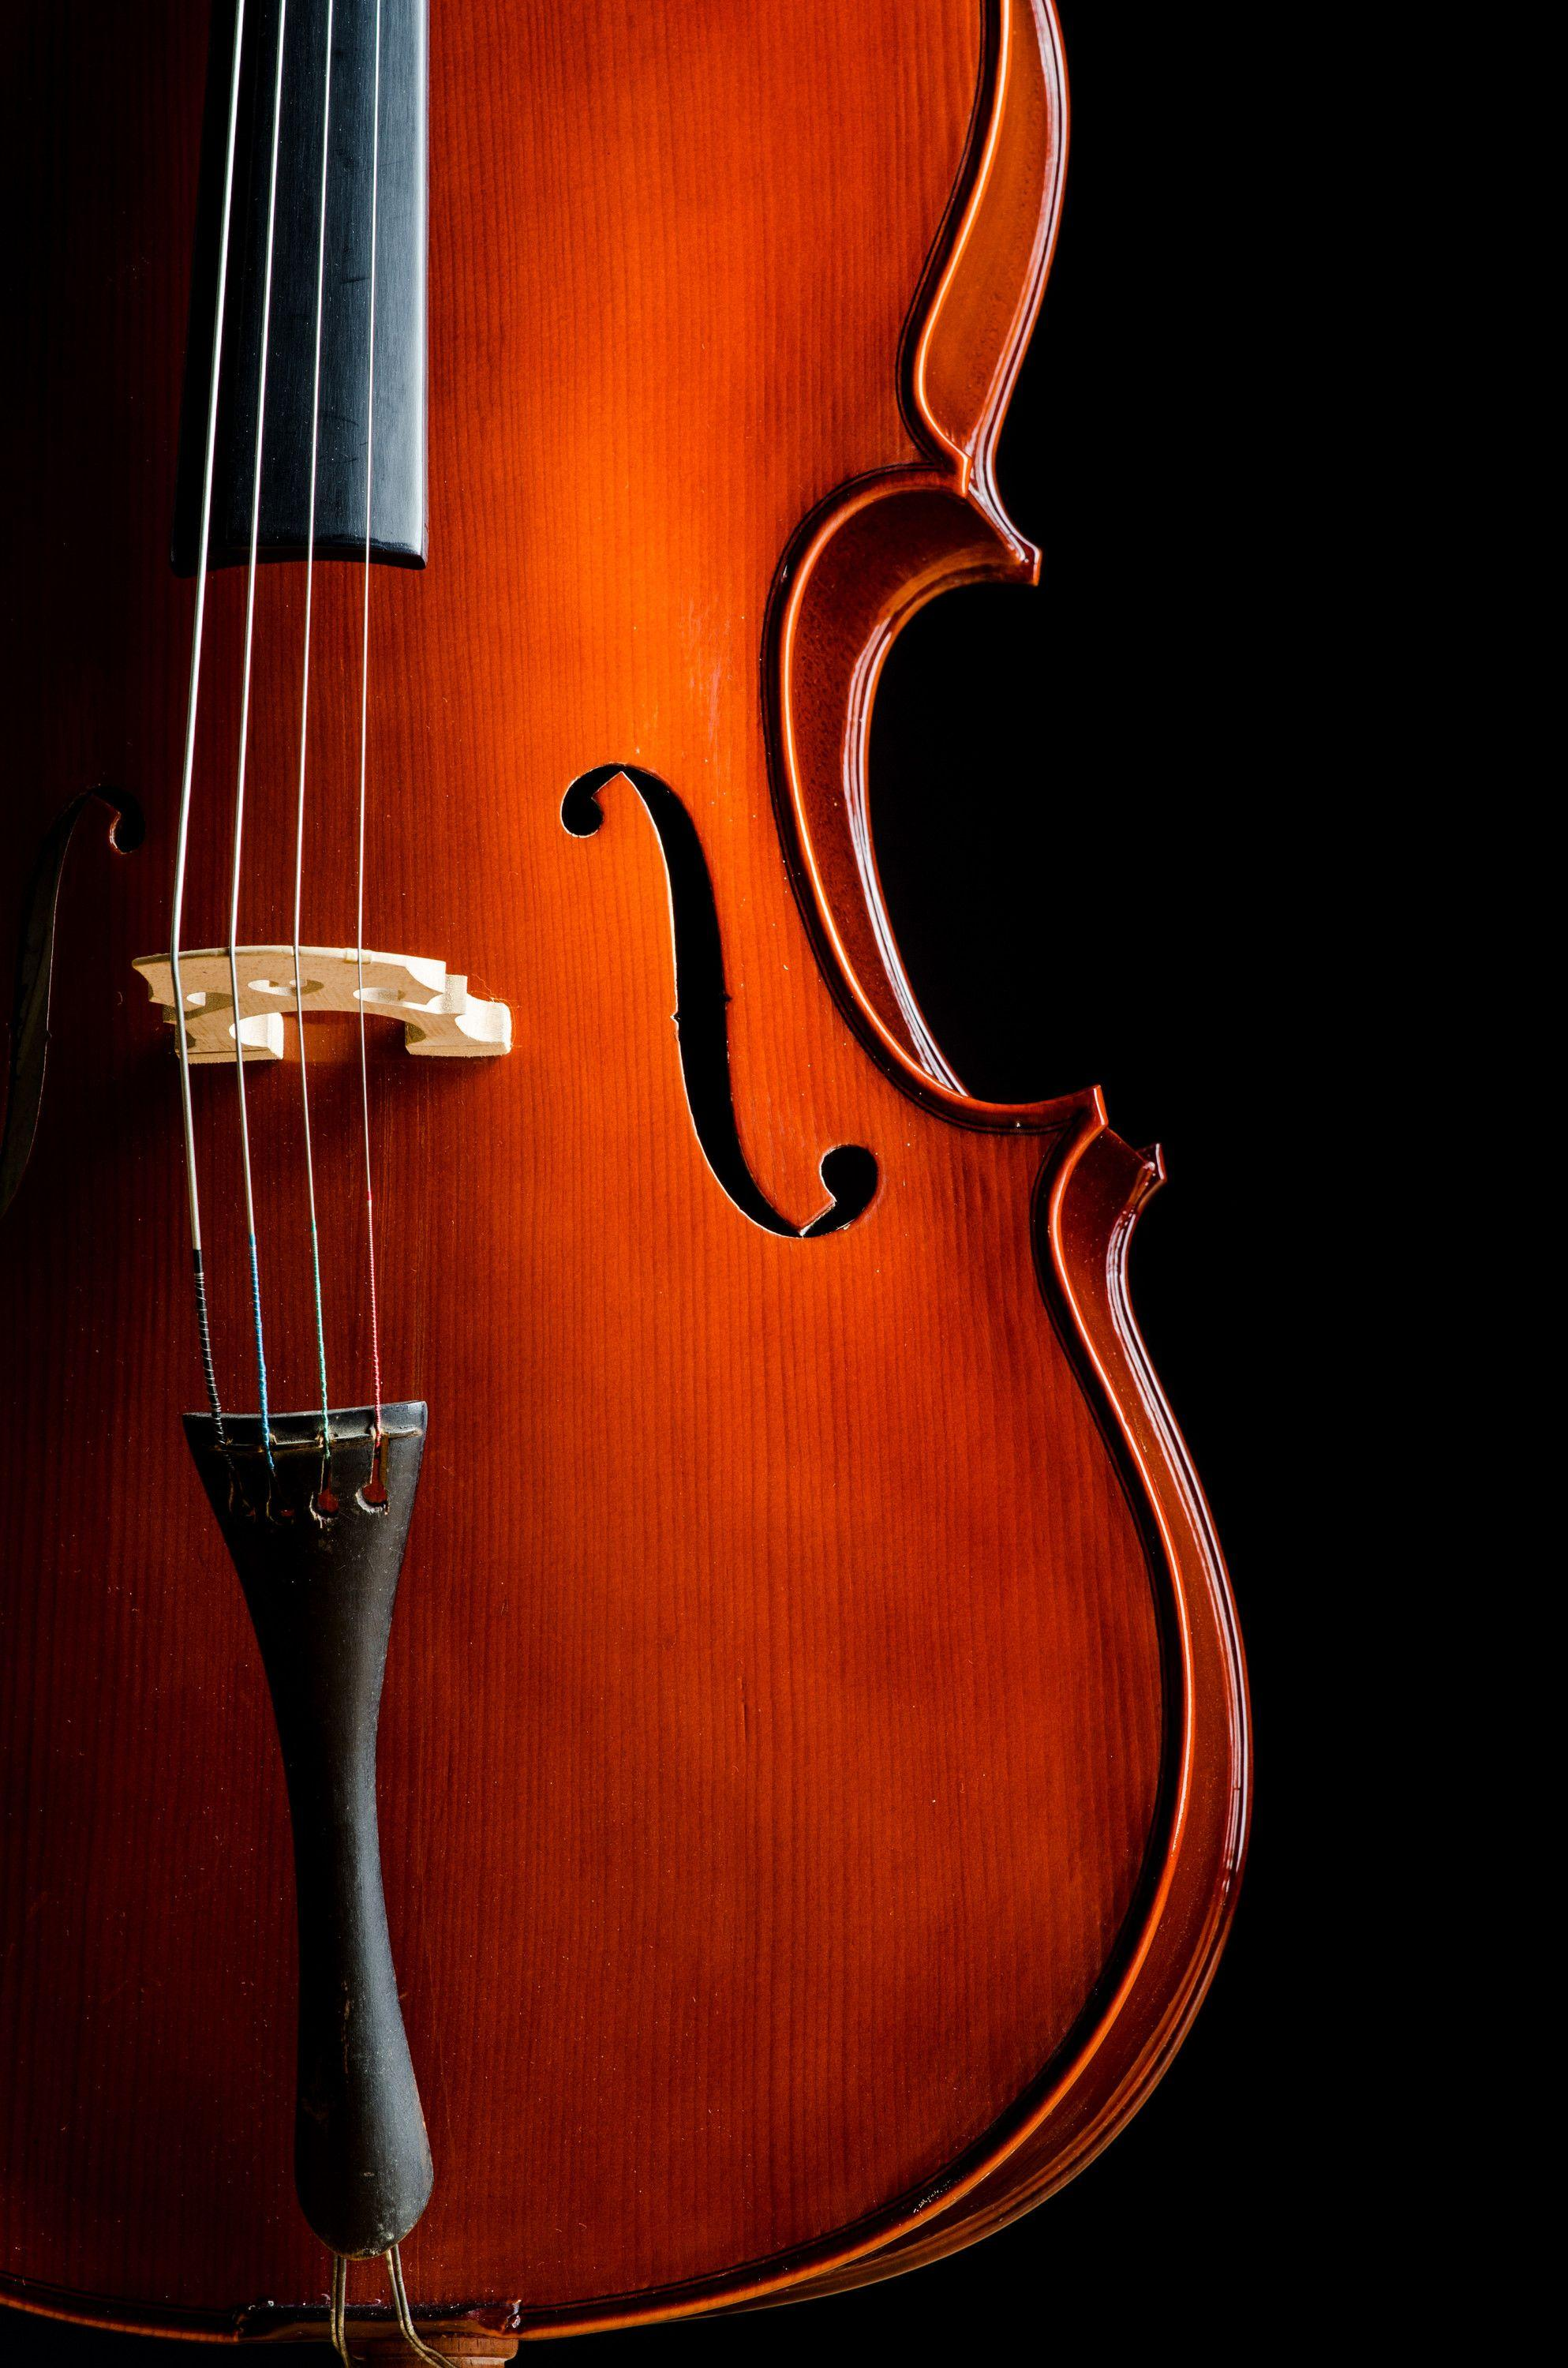 Cello Wallpapers HD